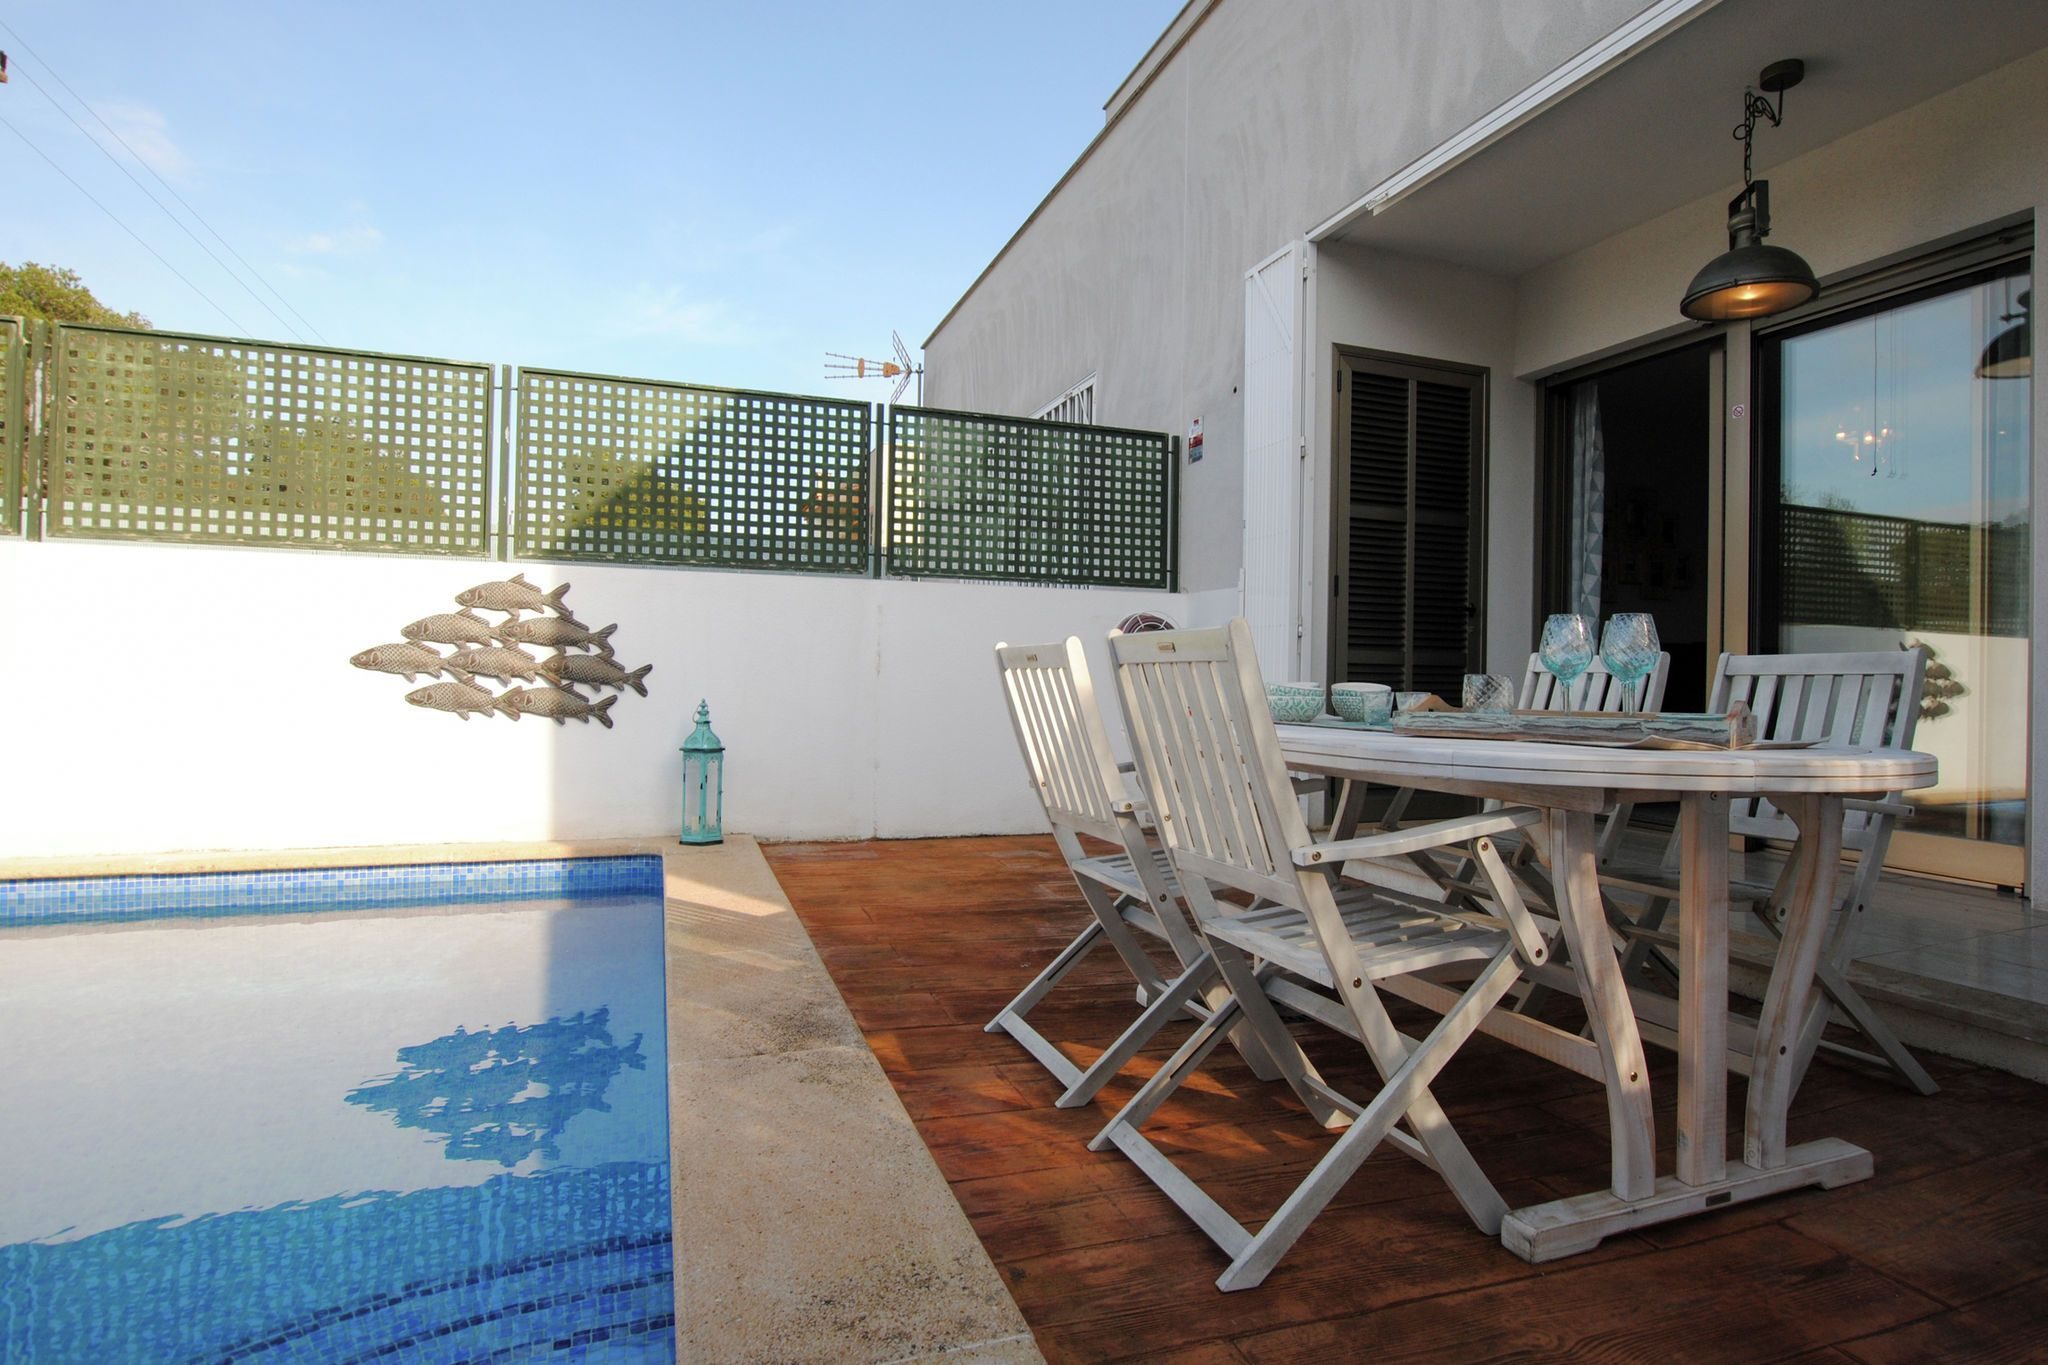 Holiday rental with 2 rooms in Cala pi